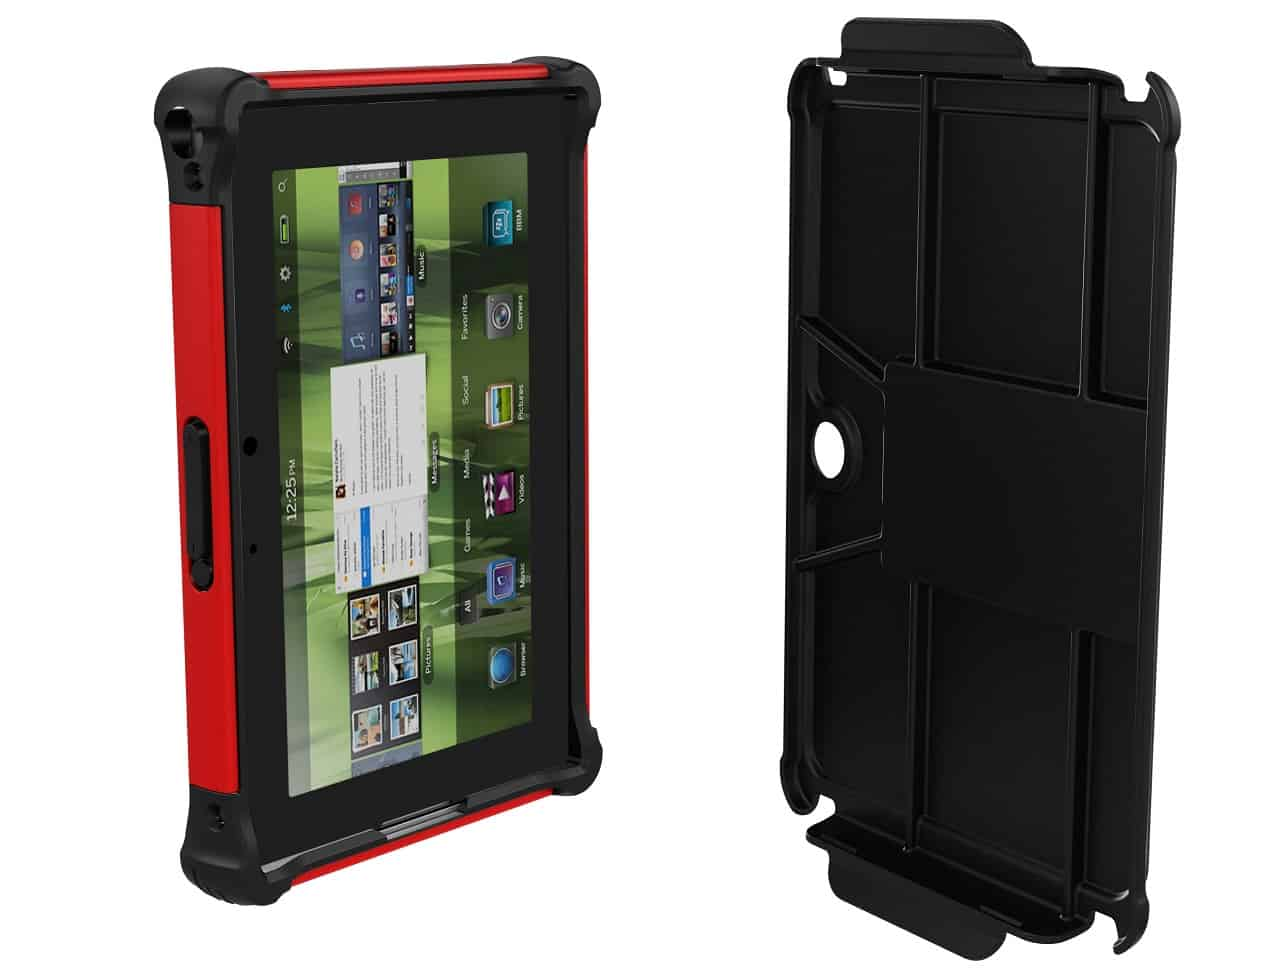 Case Design lv cell phone case : Ballistic-BlackBerry-Playbook-Tablet-Cases - GeekExtreme